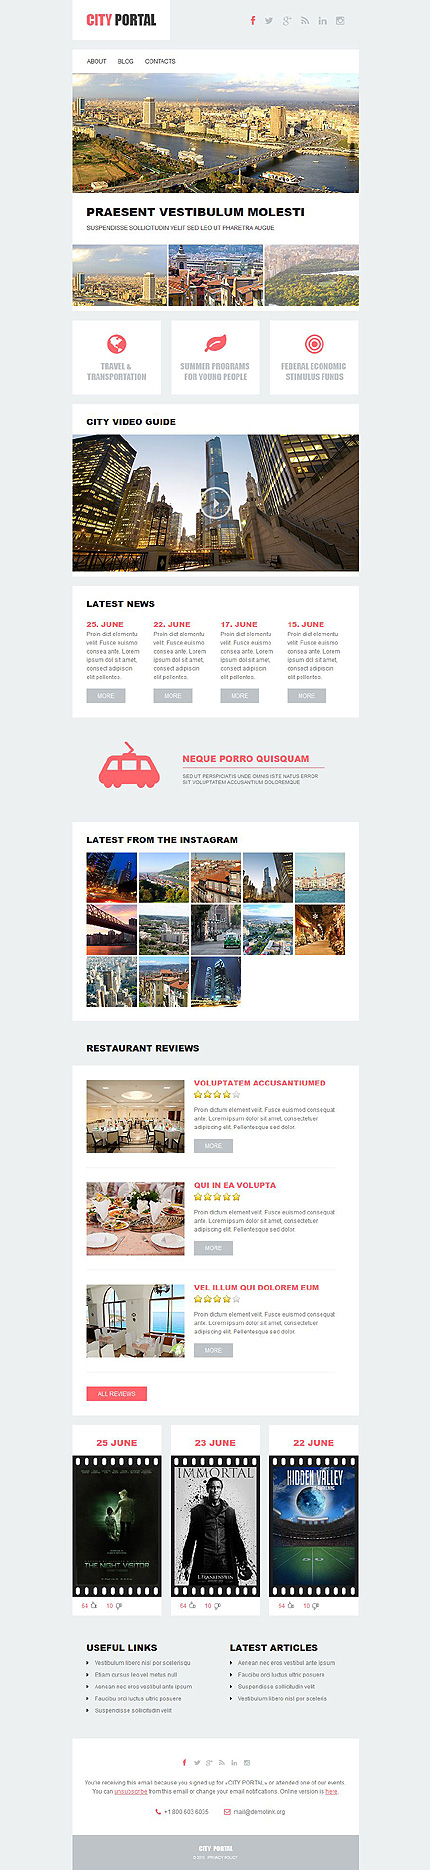 Template 52901 - City Portal Responsive Newsletter Template